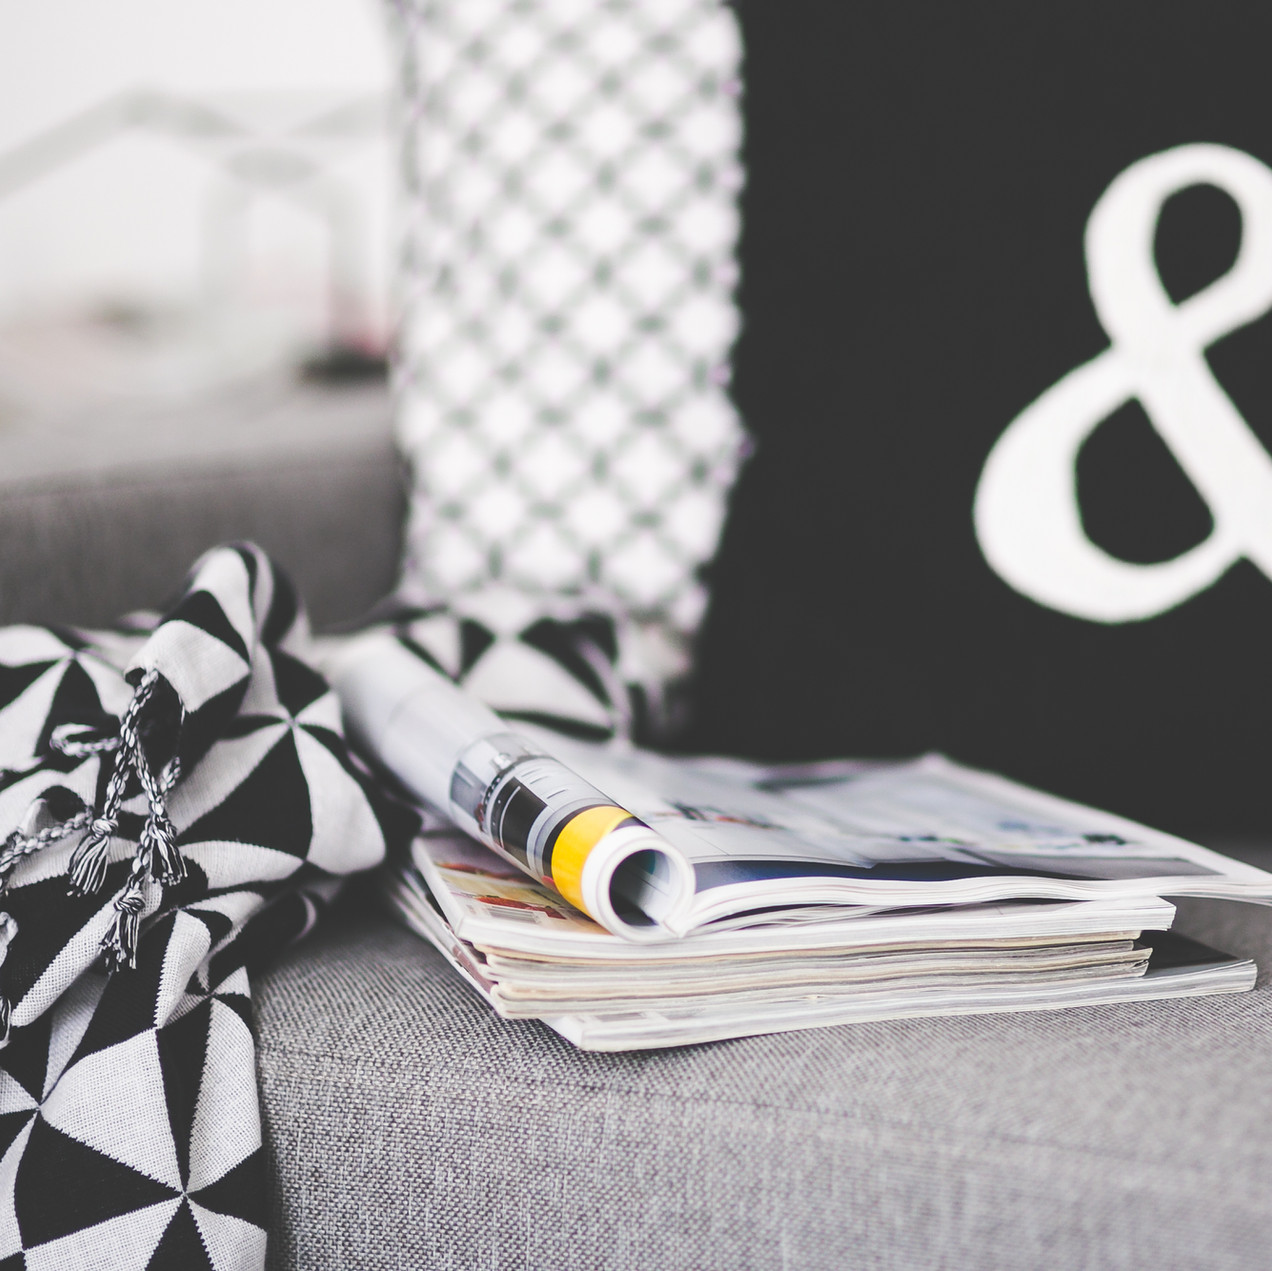 Magazines on Couch